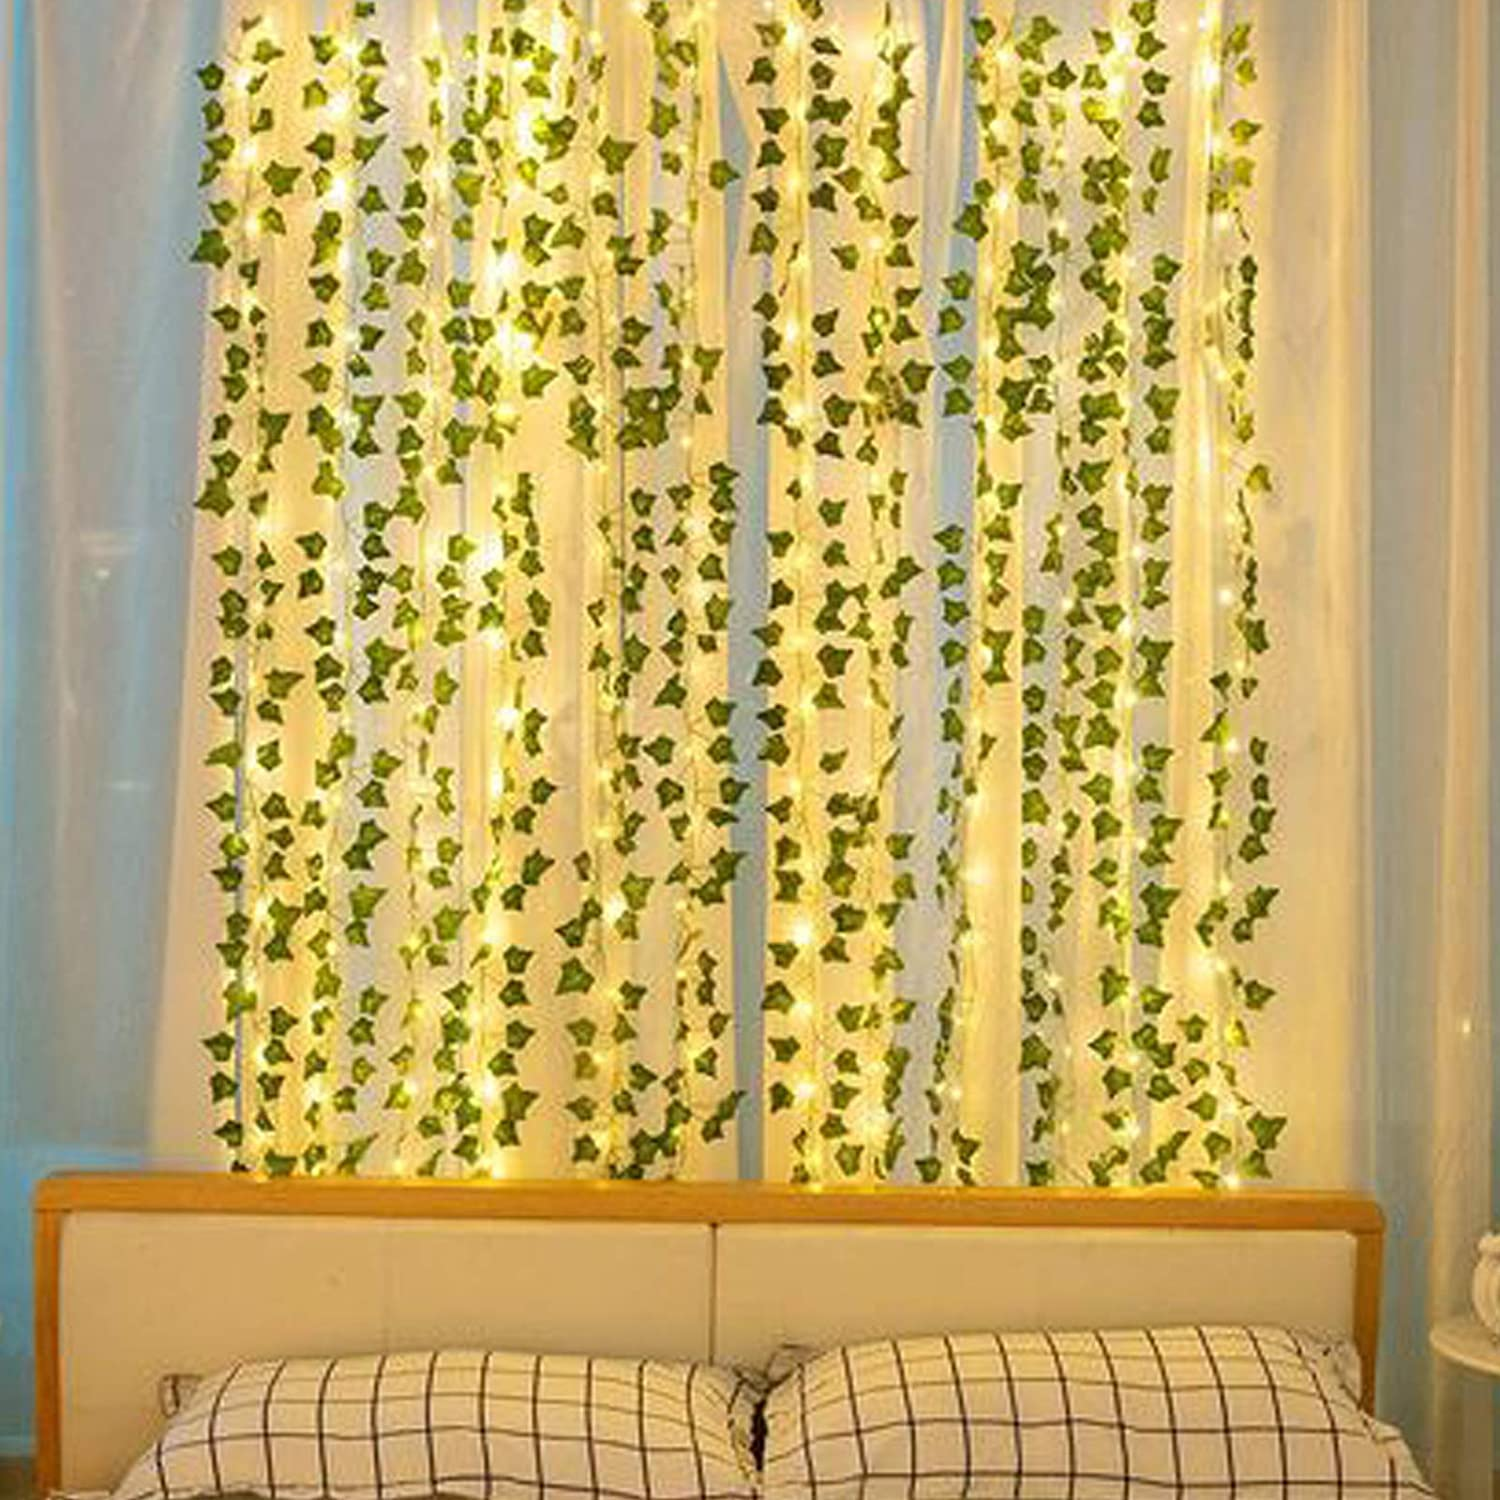 Cocoboo 14 Pack 98ft Fake Vines Ivy With 100 Led String Lights For Home Decor Kitchen Wall Bedroom Garden Wedding Greenery Garland Fake Plants Artificial Ivy Leaves Green Vines Hanging Garland Home